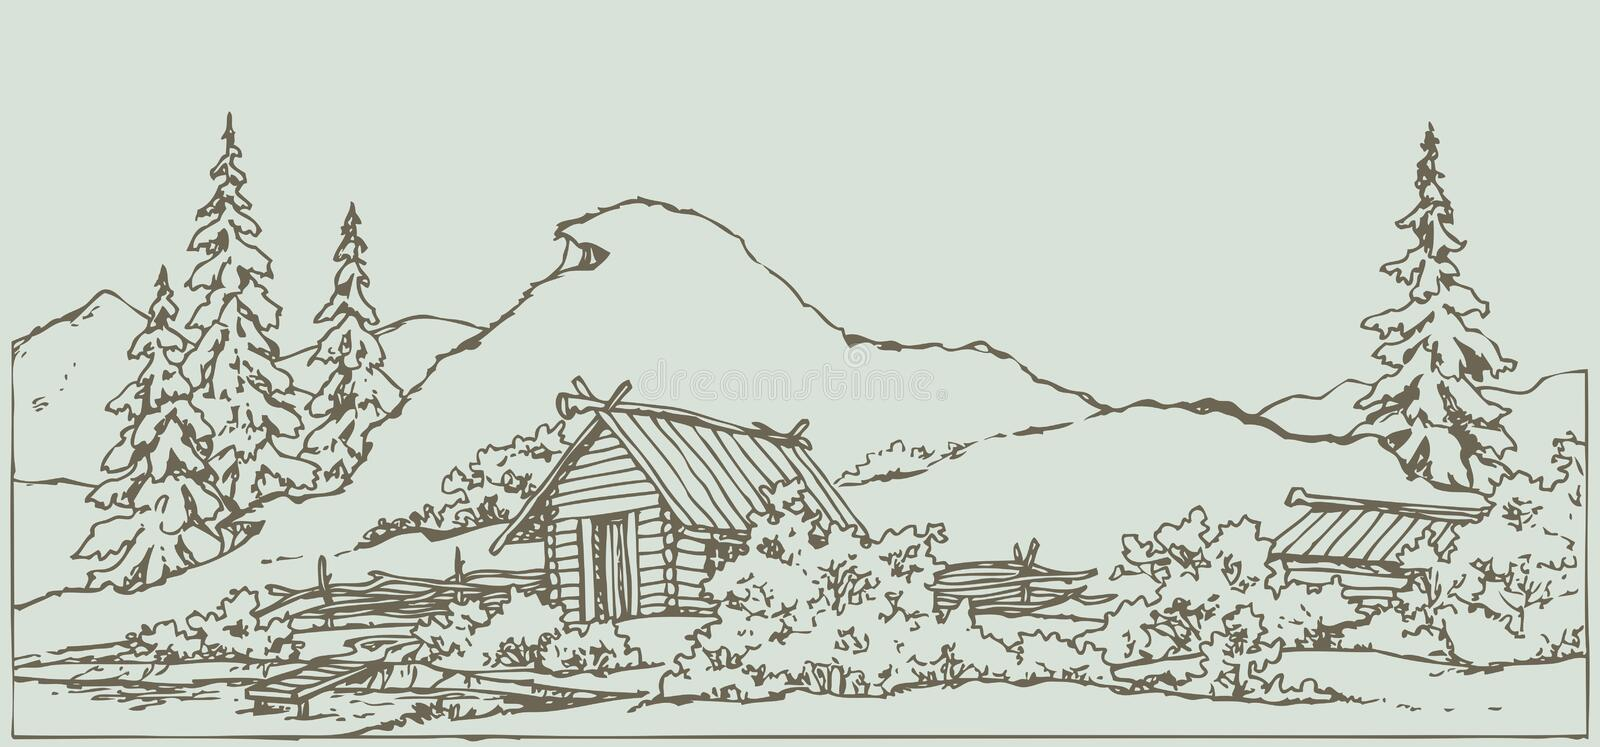 Vector drawing. Ancient rural landscape. Vector freehand ink scene in style of contour book engraving. Medieval rural landscape with wooden hut under high grassy royalty free illustration